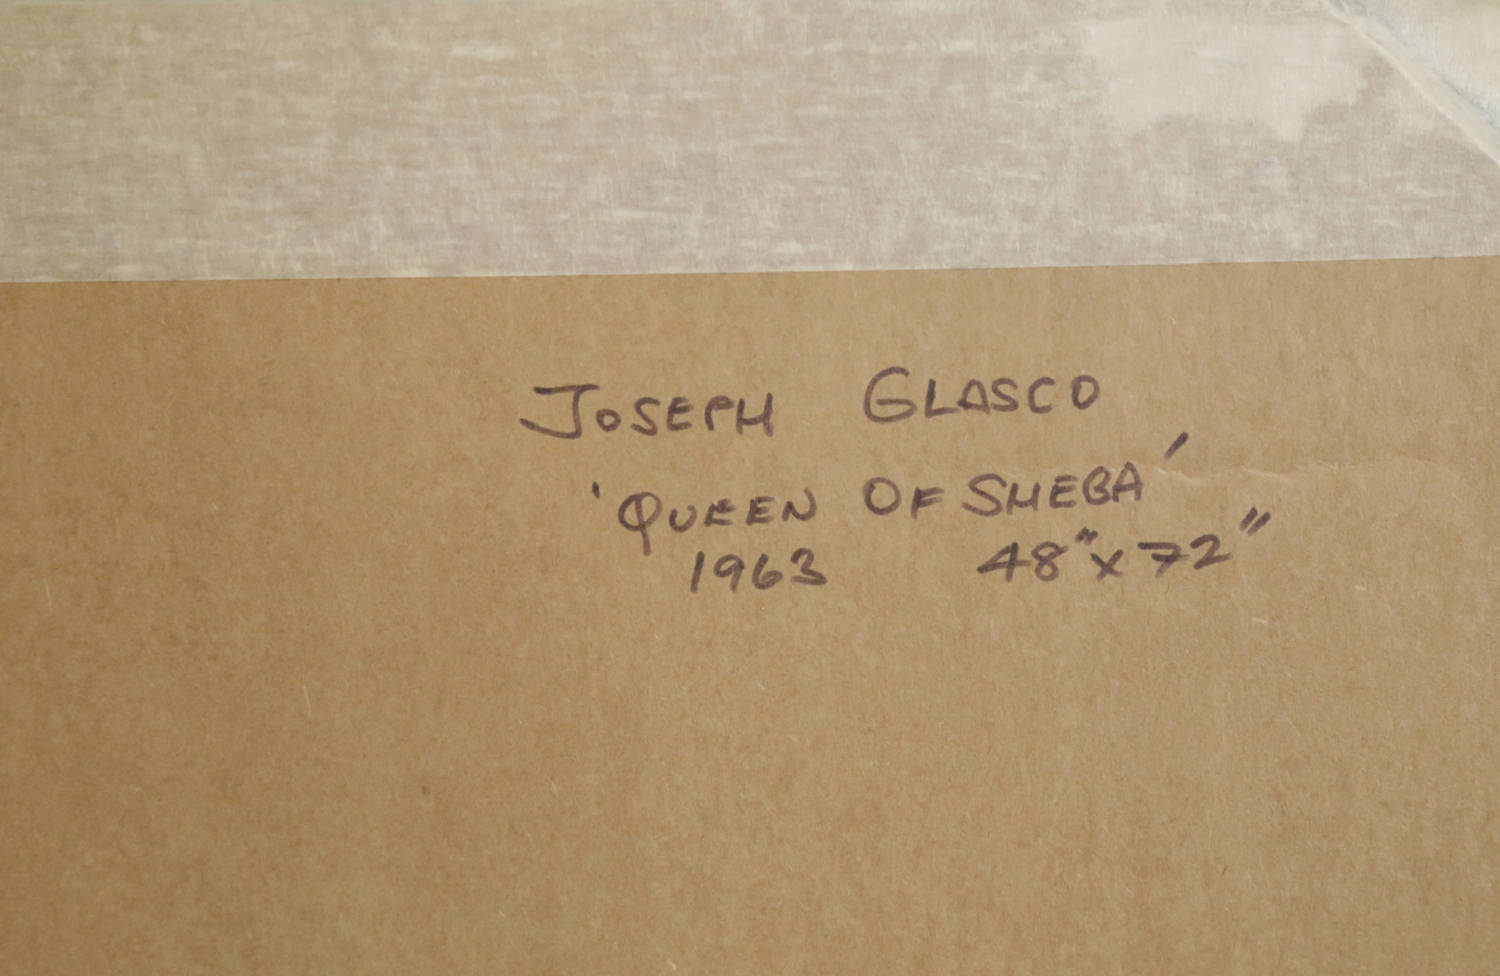 Queen of Sheba by Joseph Glasco